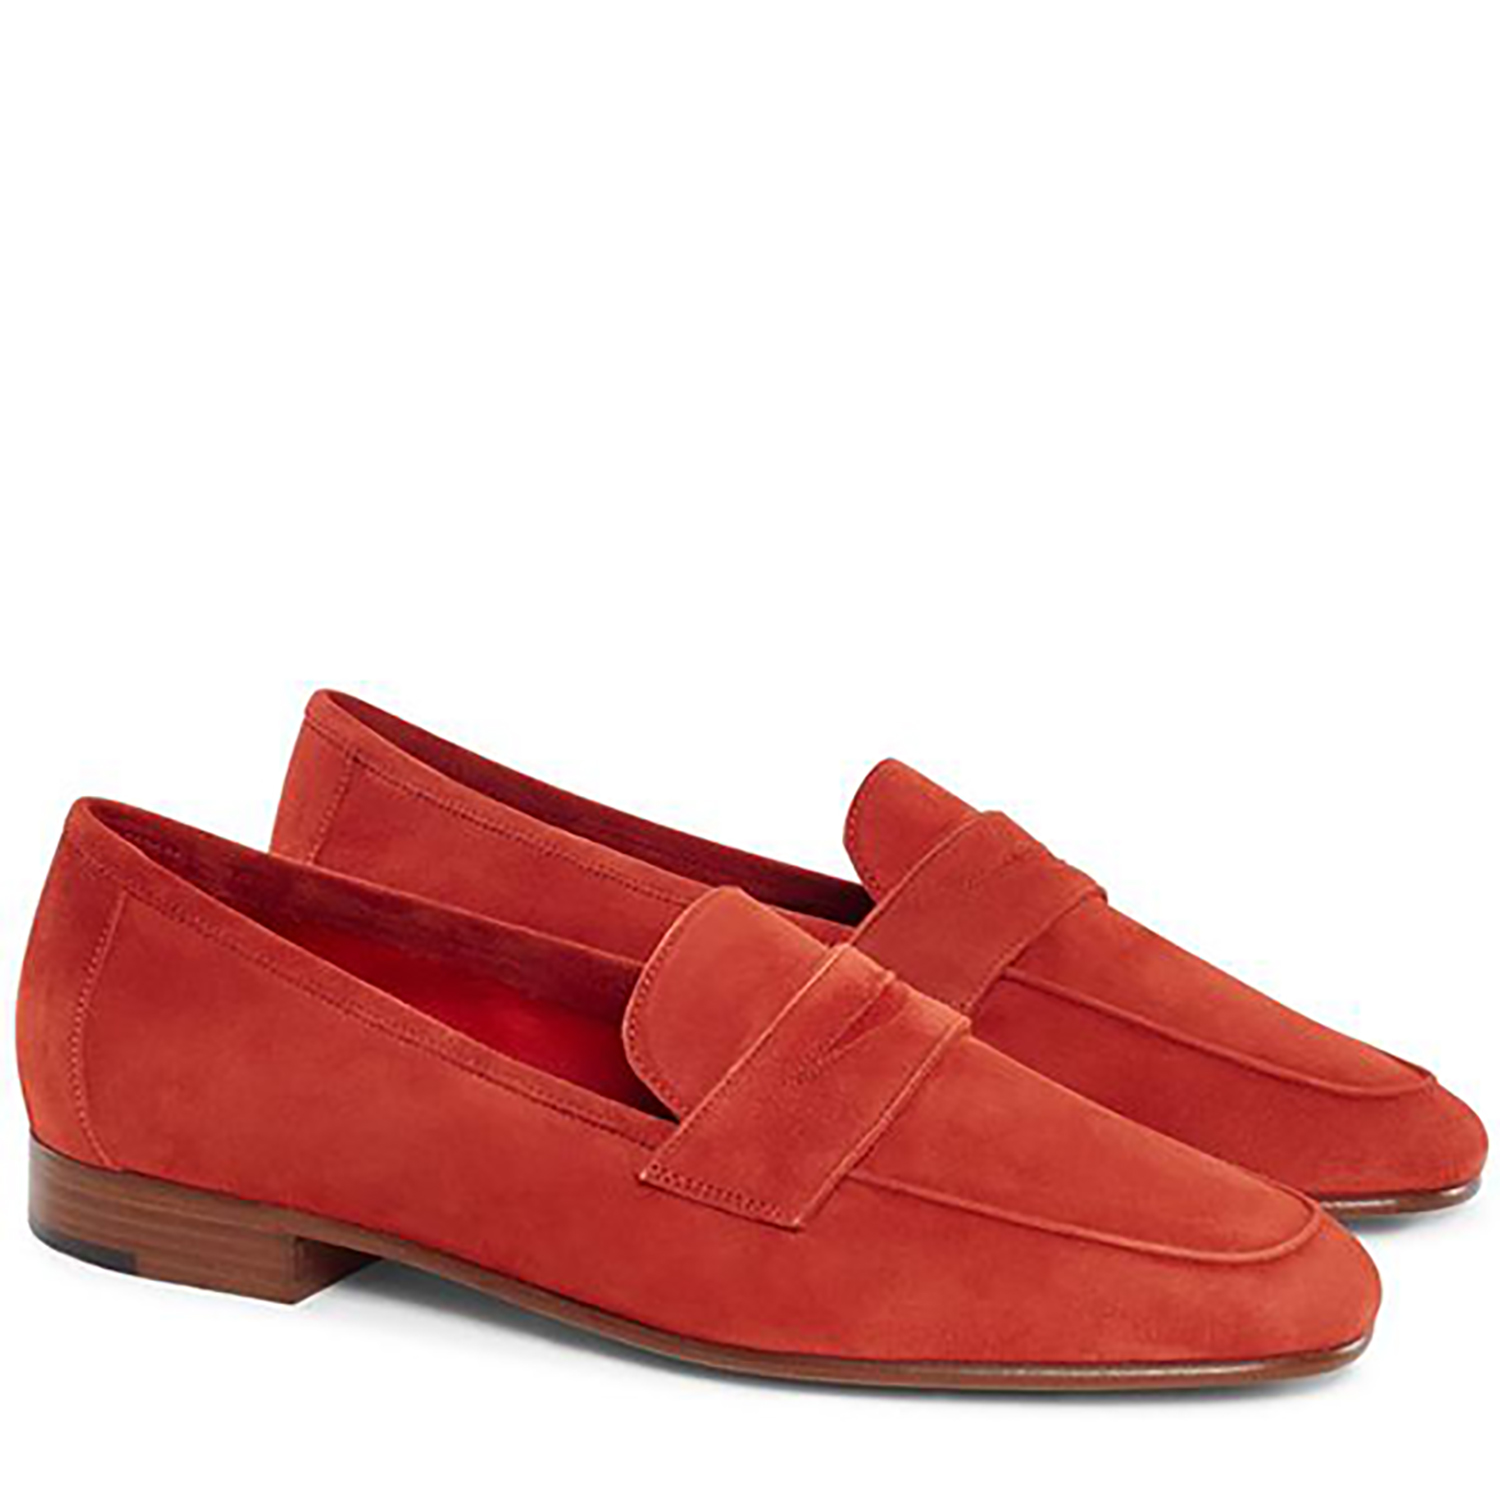 CLASSIC LOAFER SUEDE BRICK